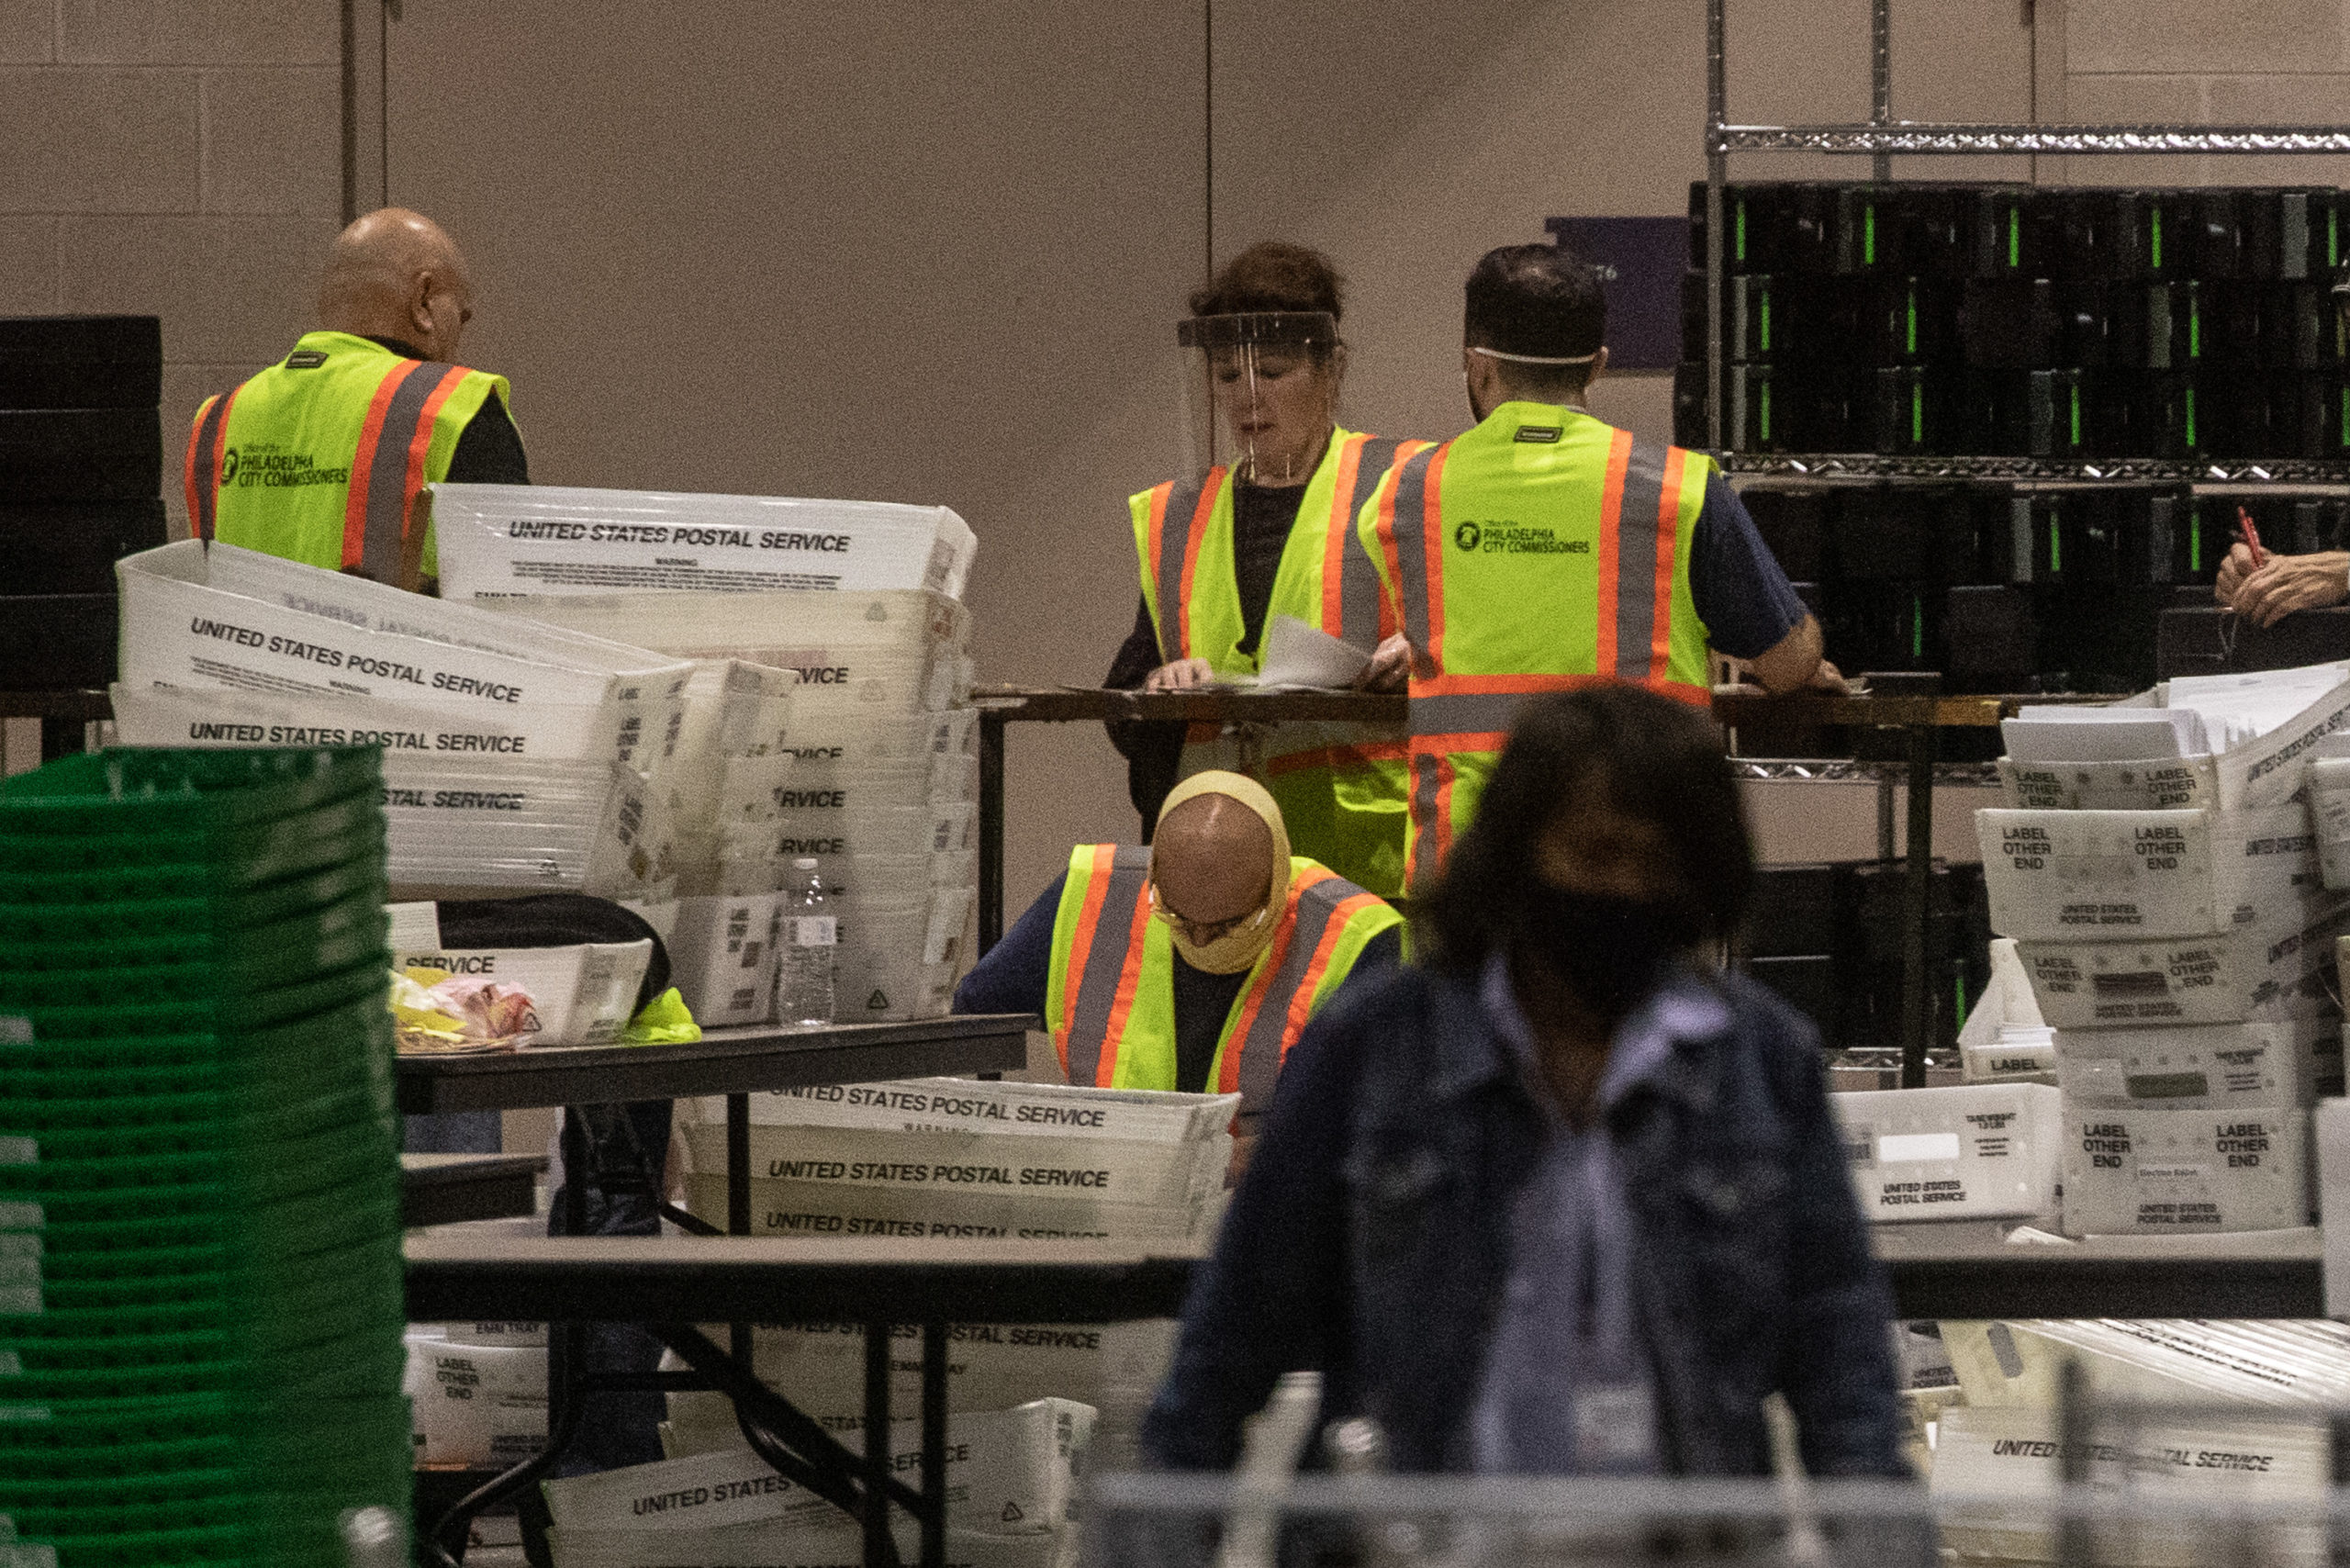 Election workers count ballots on Nov. 6 in Philadelphia, Pennsylvania. (Chris McGrath/Getty Images)